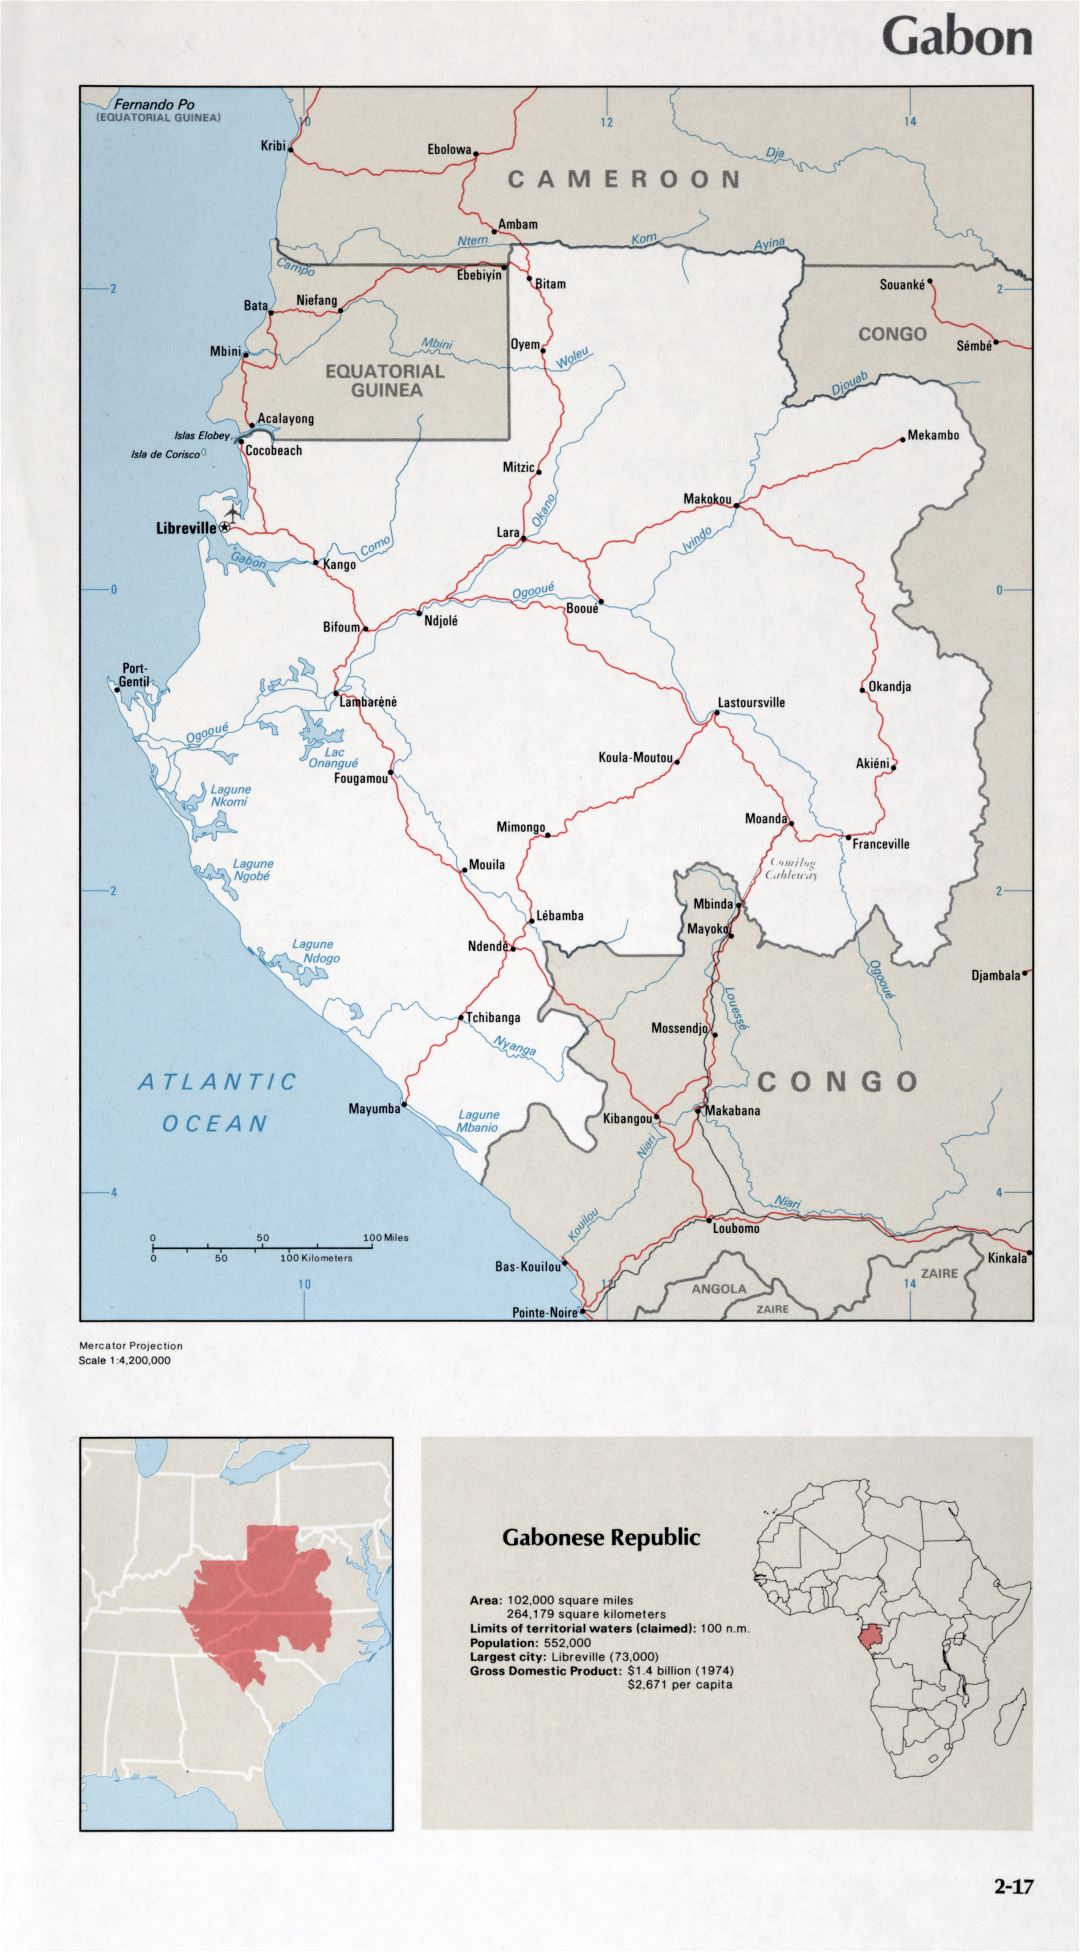 Map of Gabon (2-17)